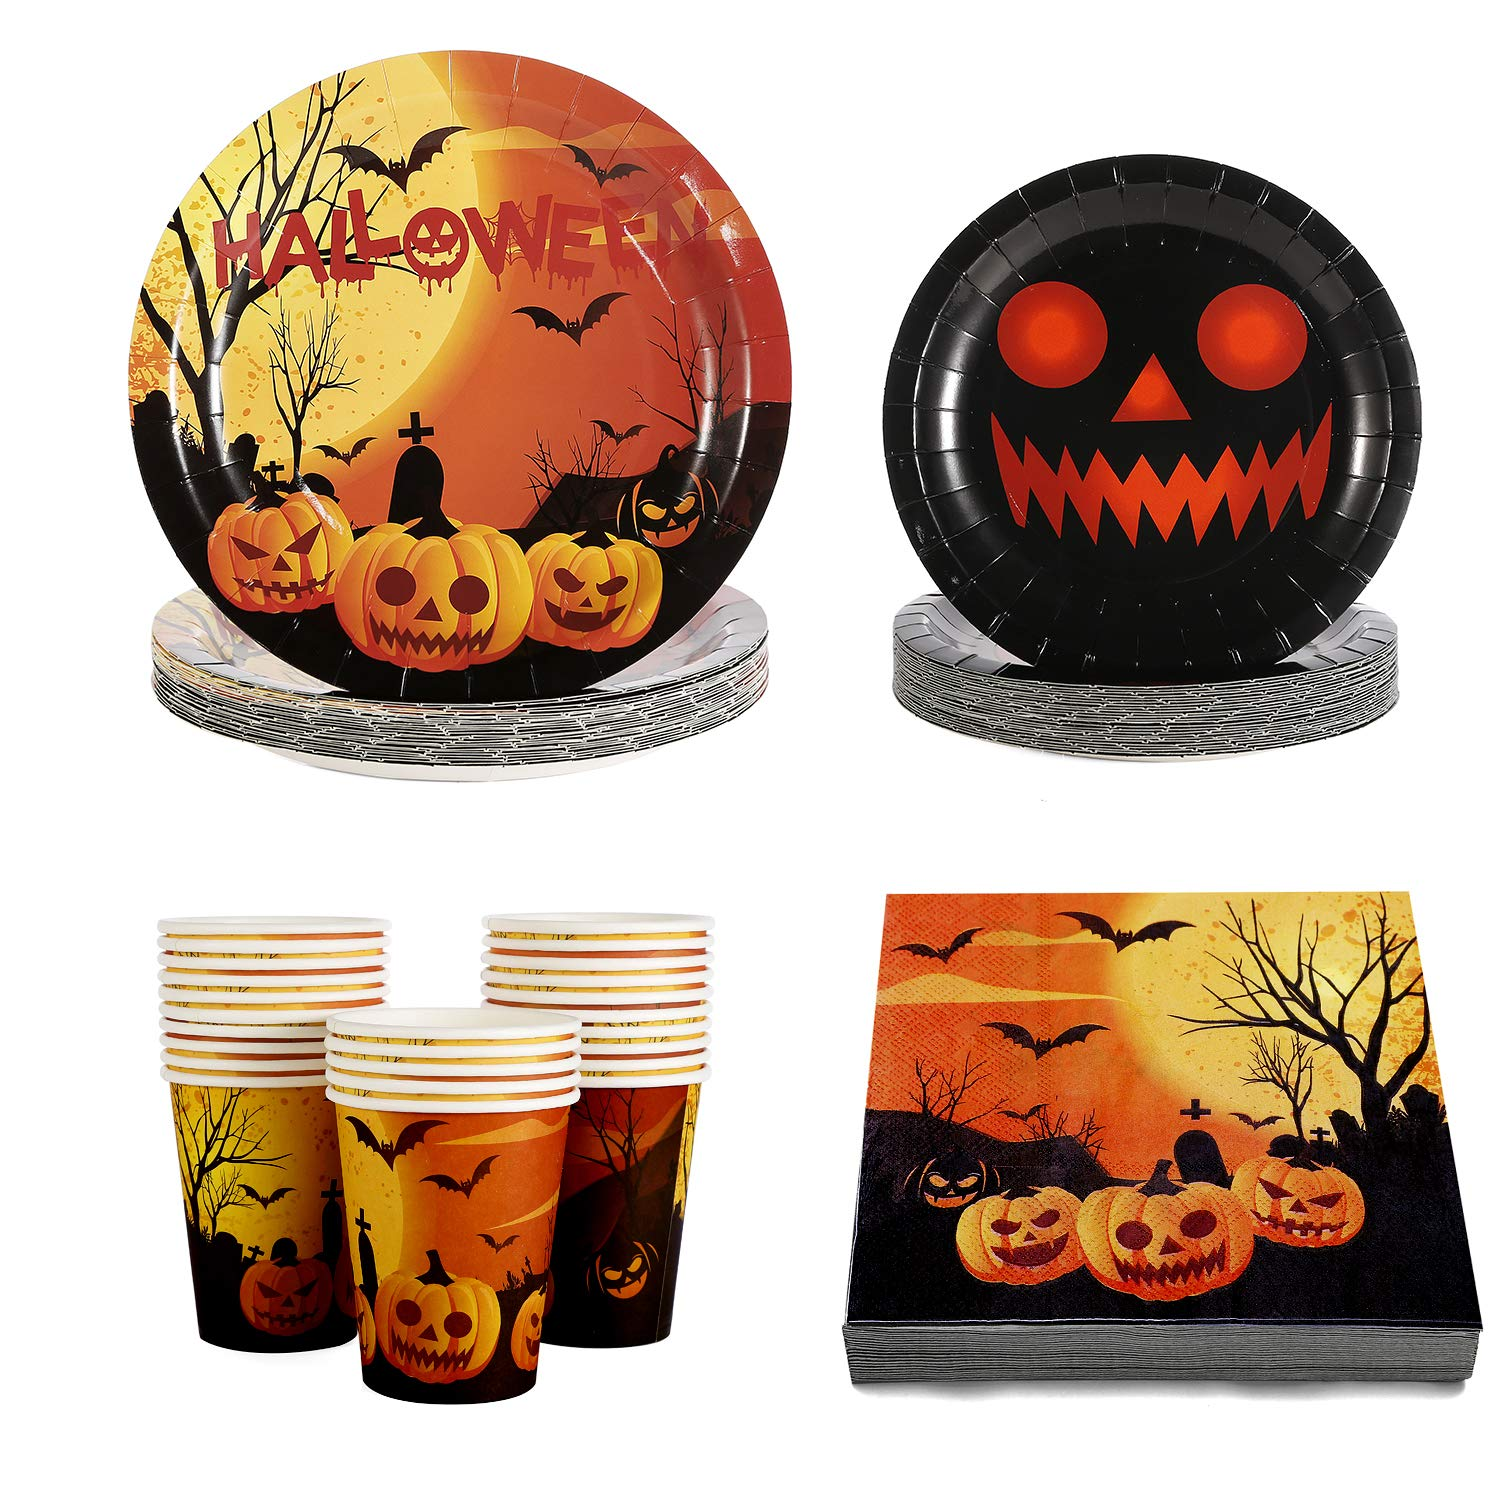 Halloween Plates Cups Napkin Disposable Tablerware Serve 25 for Halloween Pumpkin Party Supplies by Gatherfun